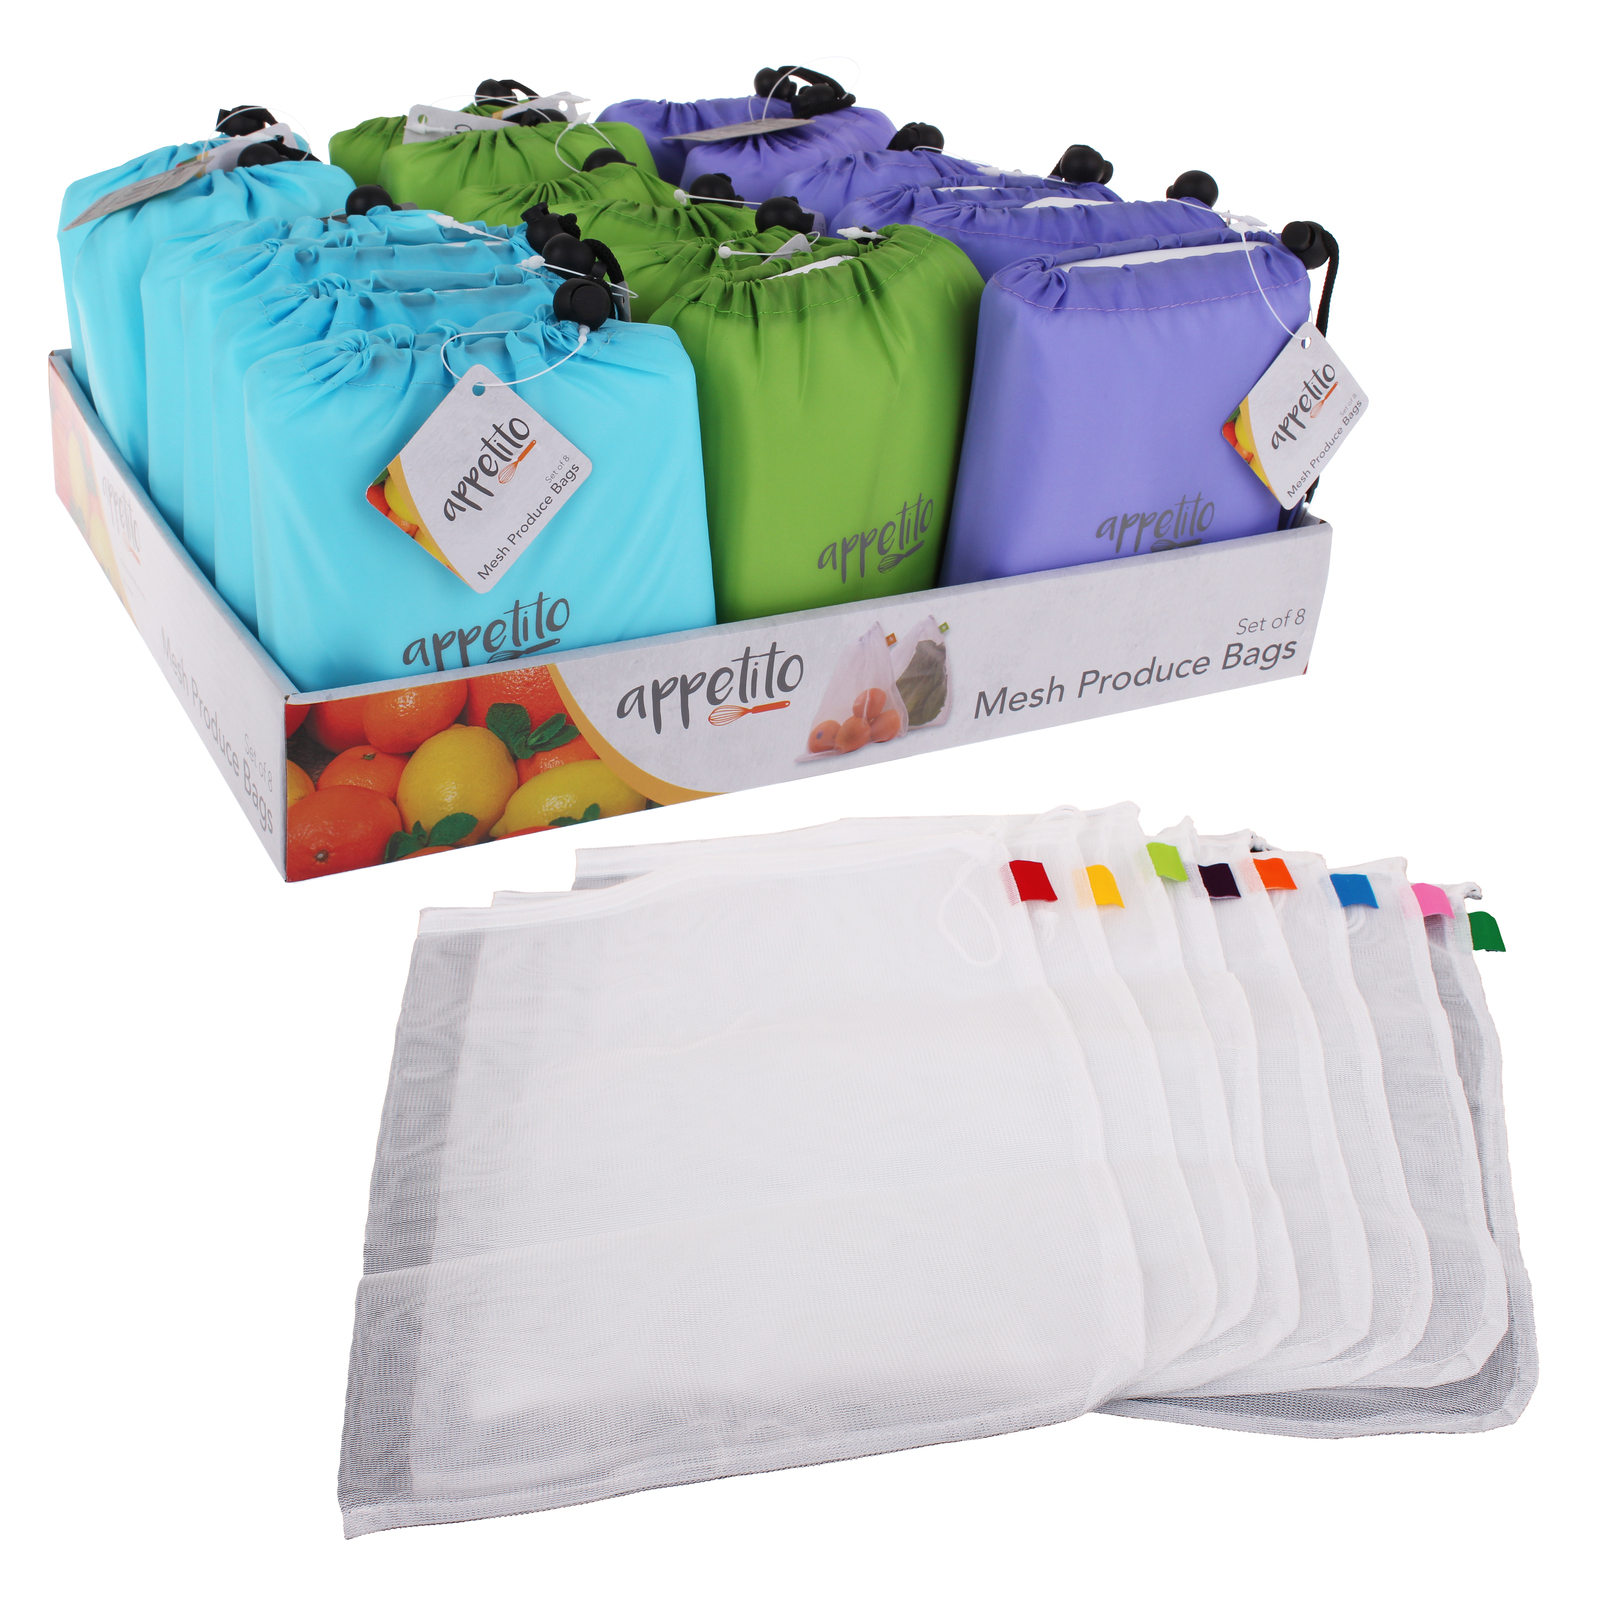 appetito reusable mesh produce bags set of 8 at mighty ape australia. Black Bedroom Furniture Sets. Home Design Ideas